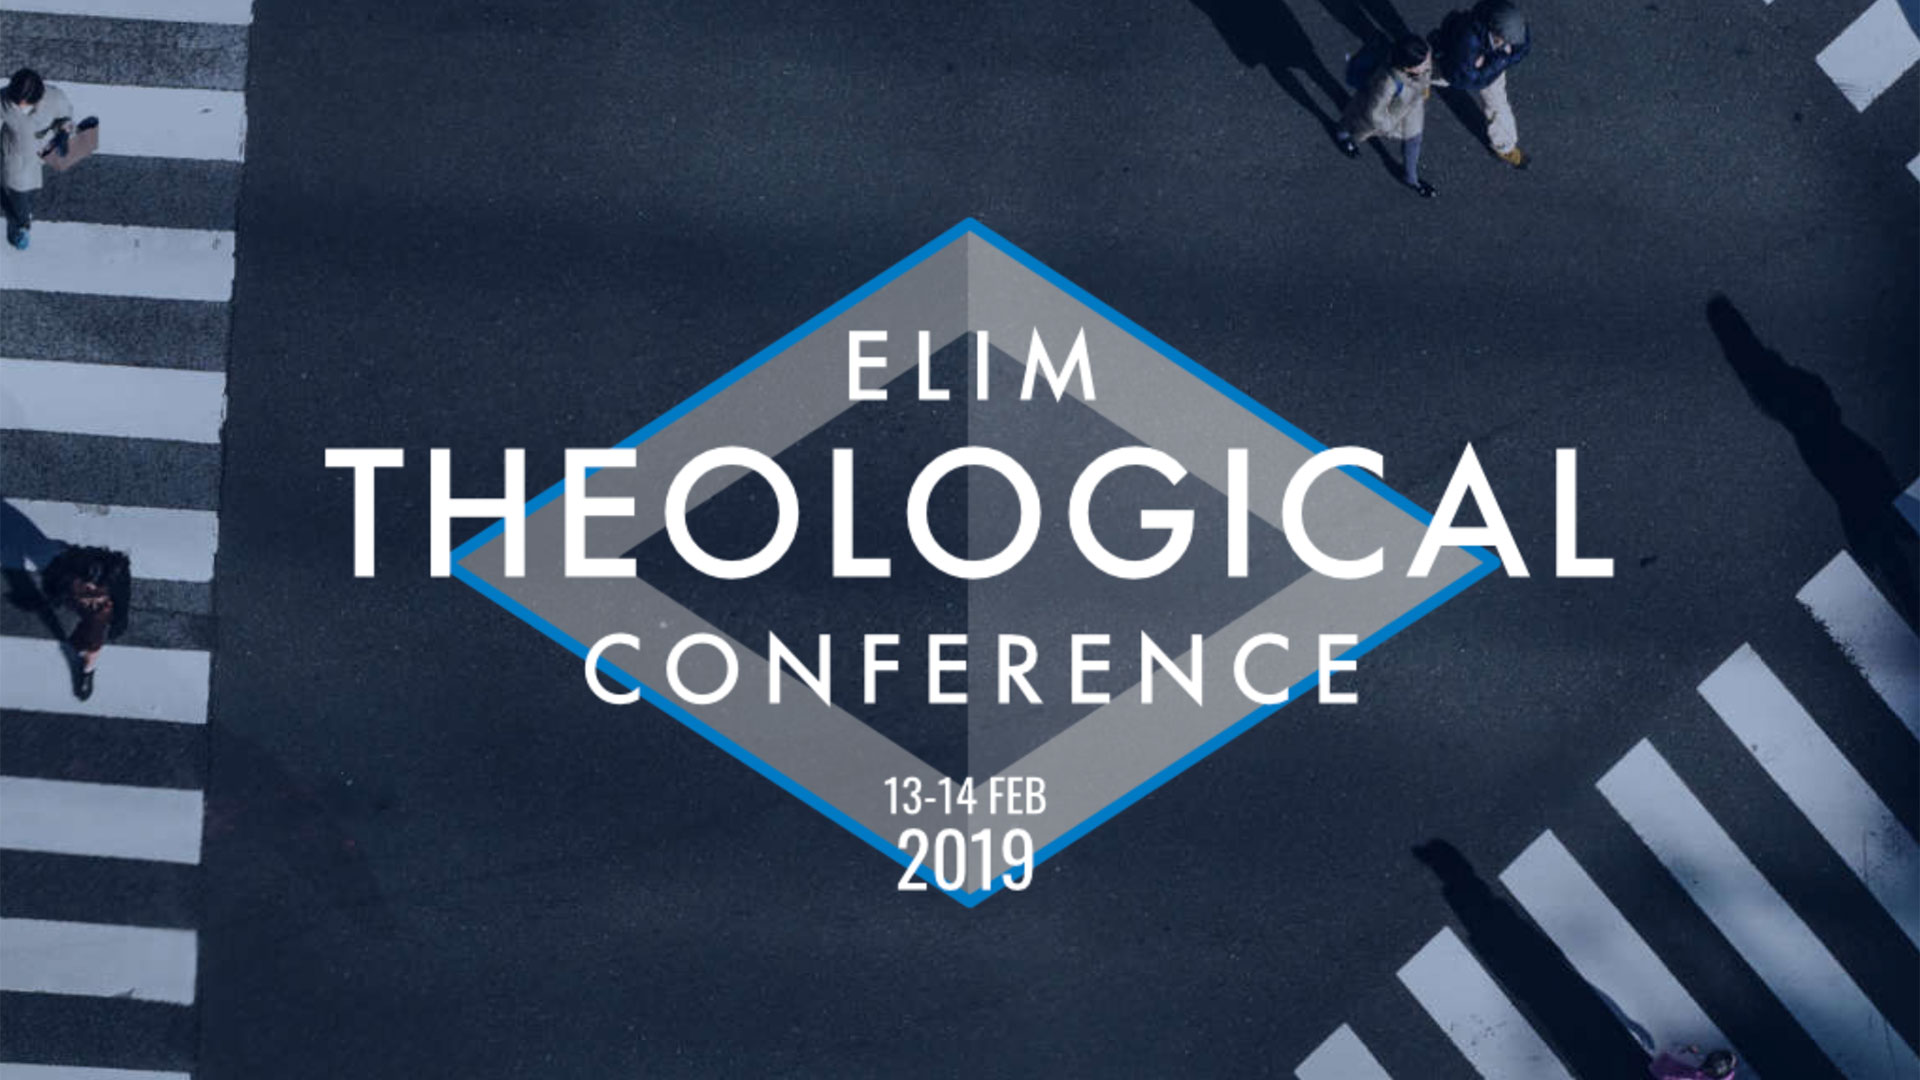 TheologicalConference